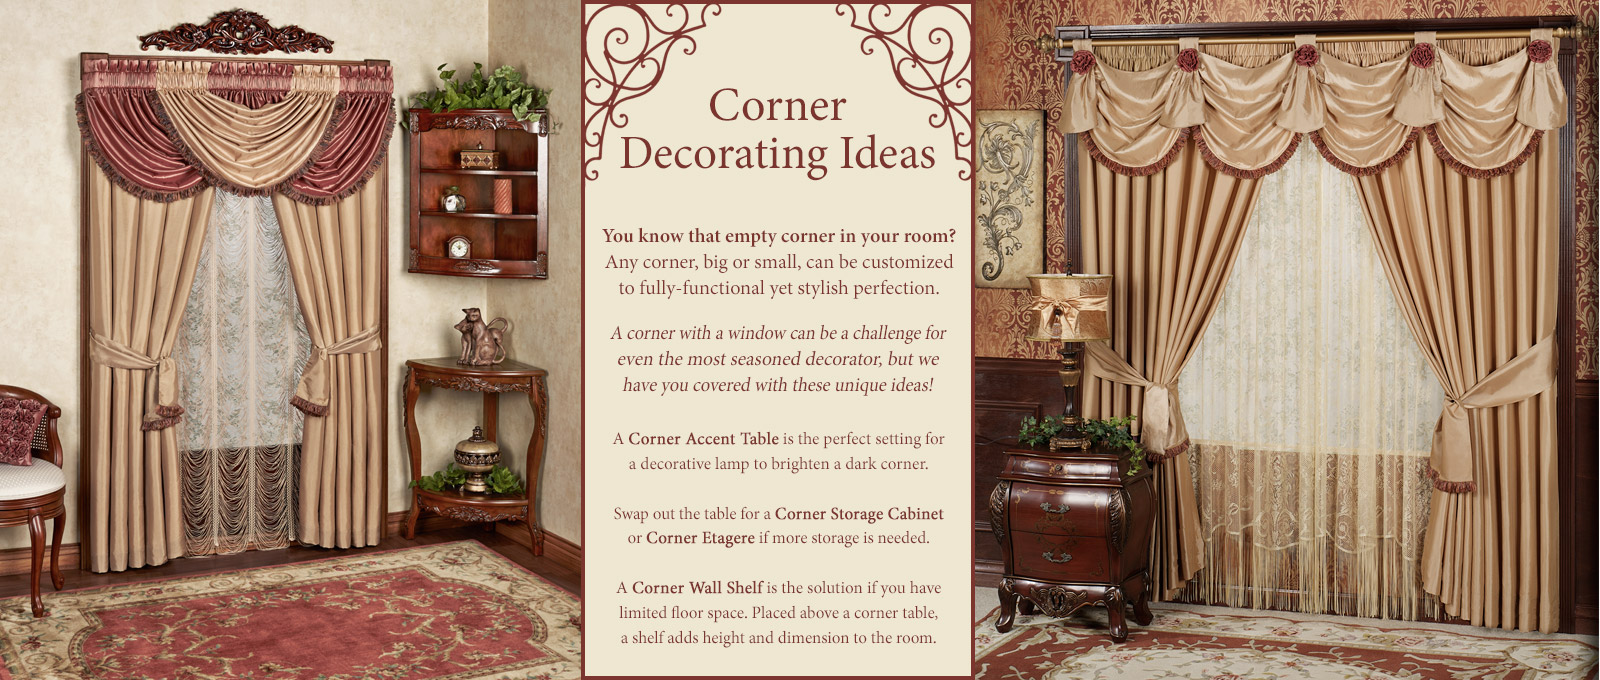 corner decorating ideas touch class small accent table more accents room decor lamp globes umbrella base with wheels foyer storage upholstered chair entryway white metal garden